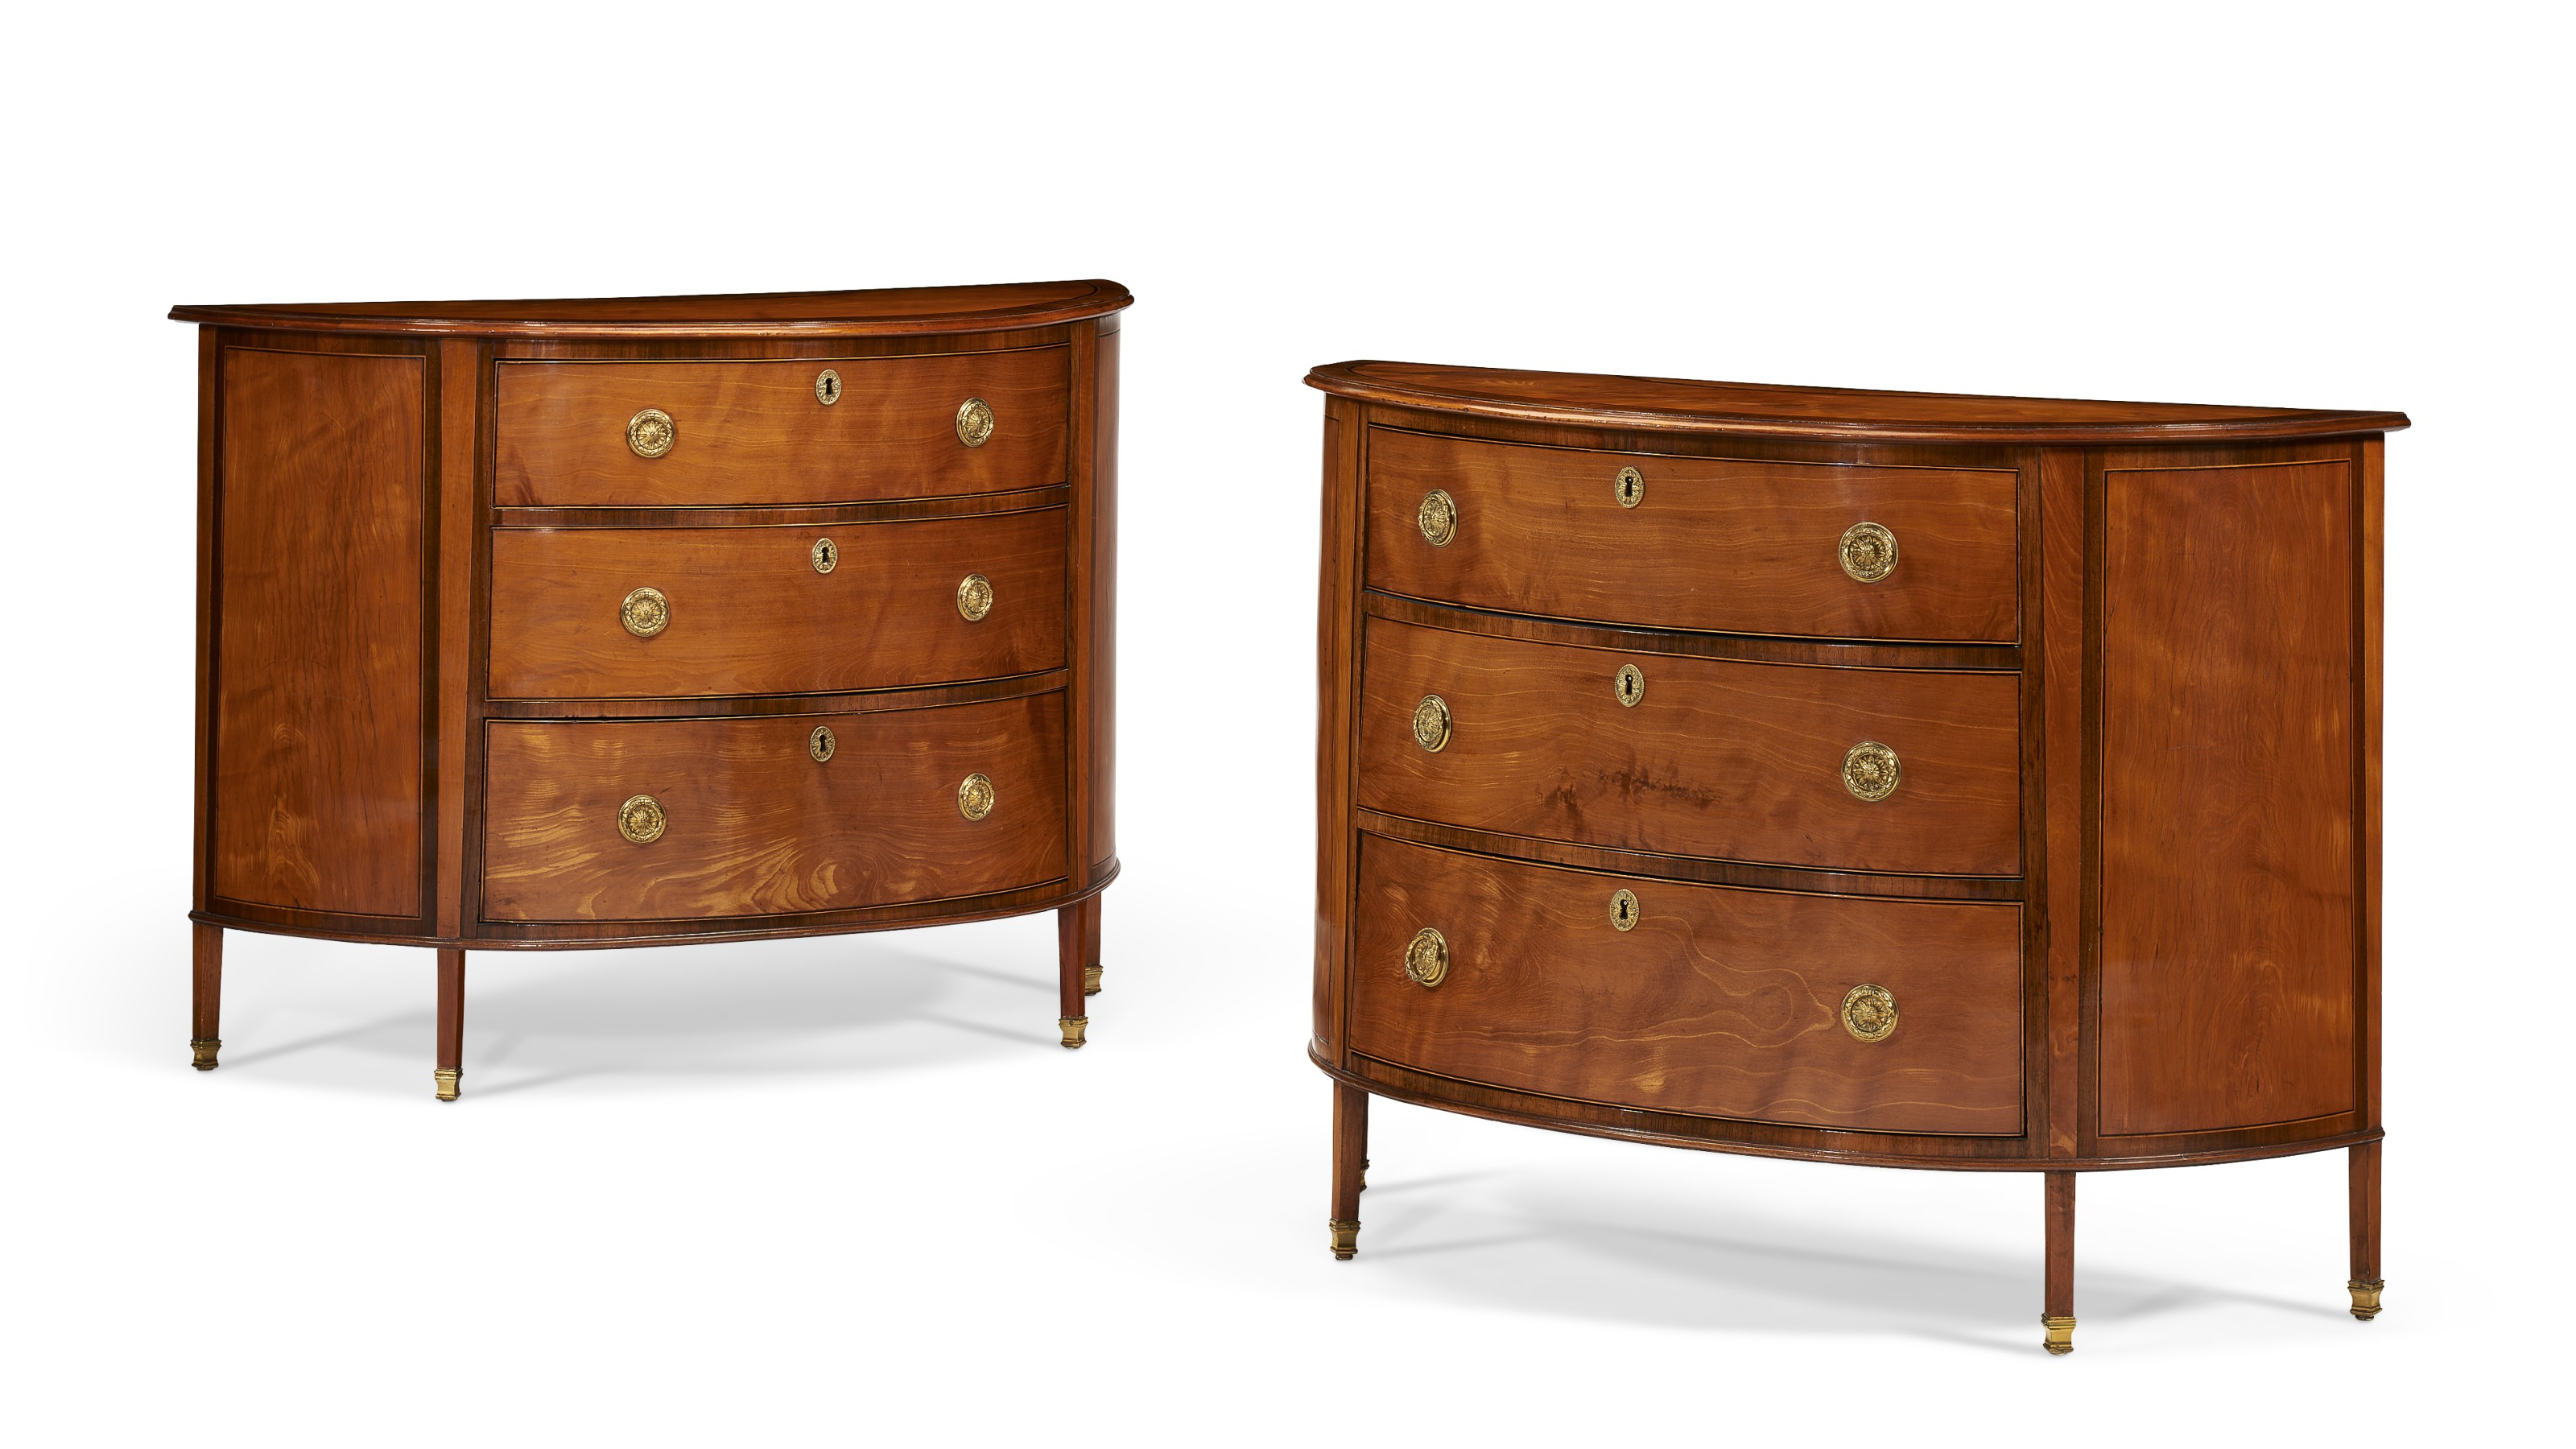 A near pair of George III inlaid satinwood commodes, c. 1780, attributed to Ince and Mayhew. 34¾  in (88  cm) high, 48  in (122  cm) wide, 19½  in (49.5  cm) deep. Estimate $10,000-15,000. Offered in The Collector English & European Furniture, Ceramics, Silver & Works of Art on 5-19 October 2021 at Christie's Online